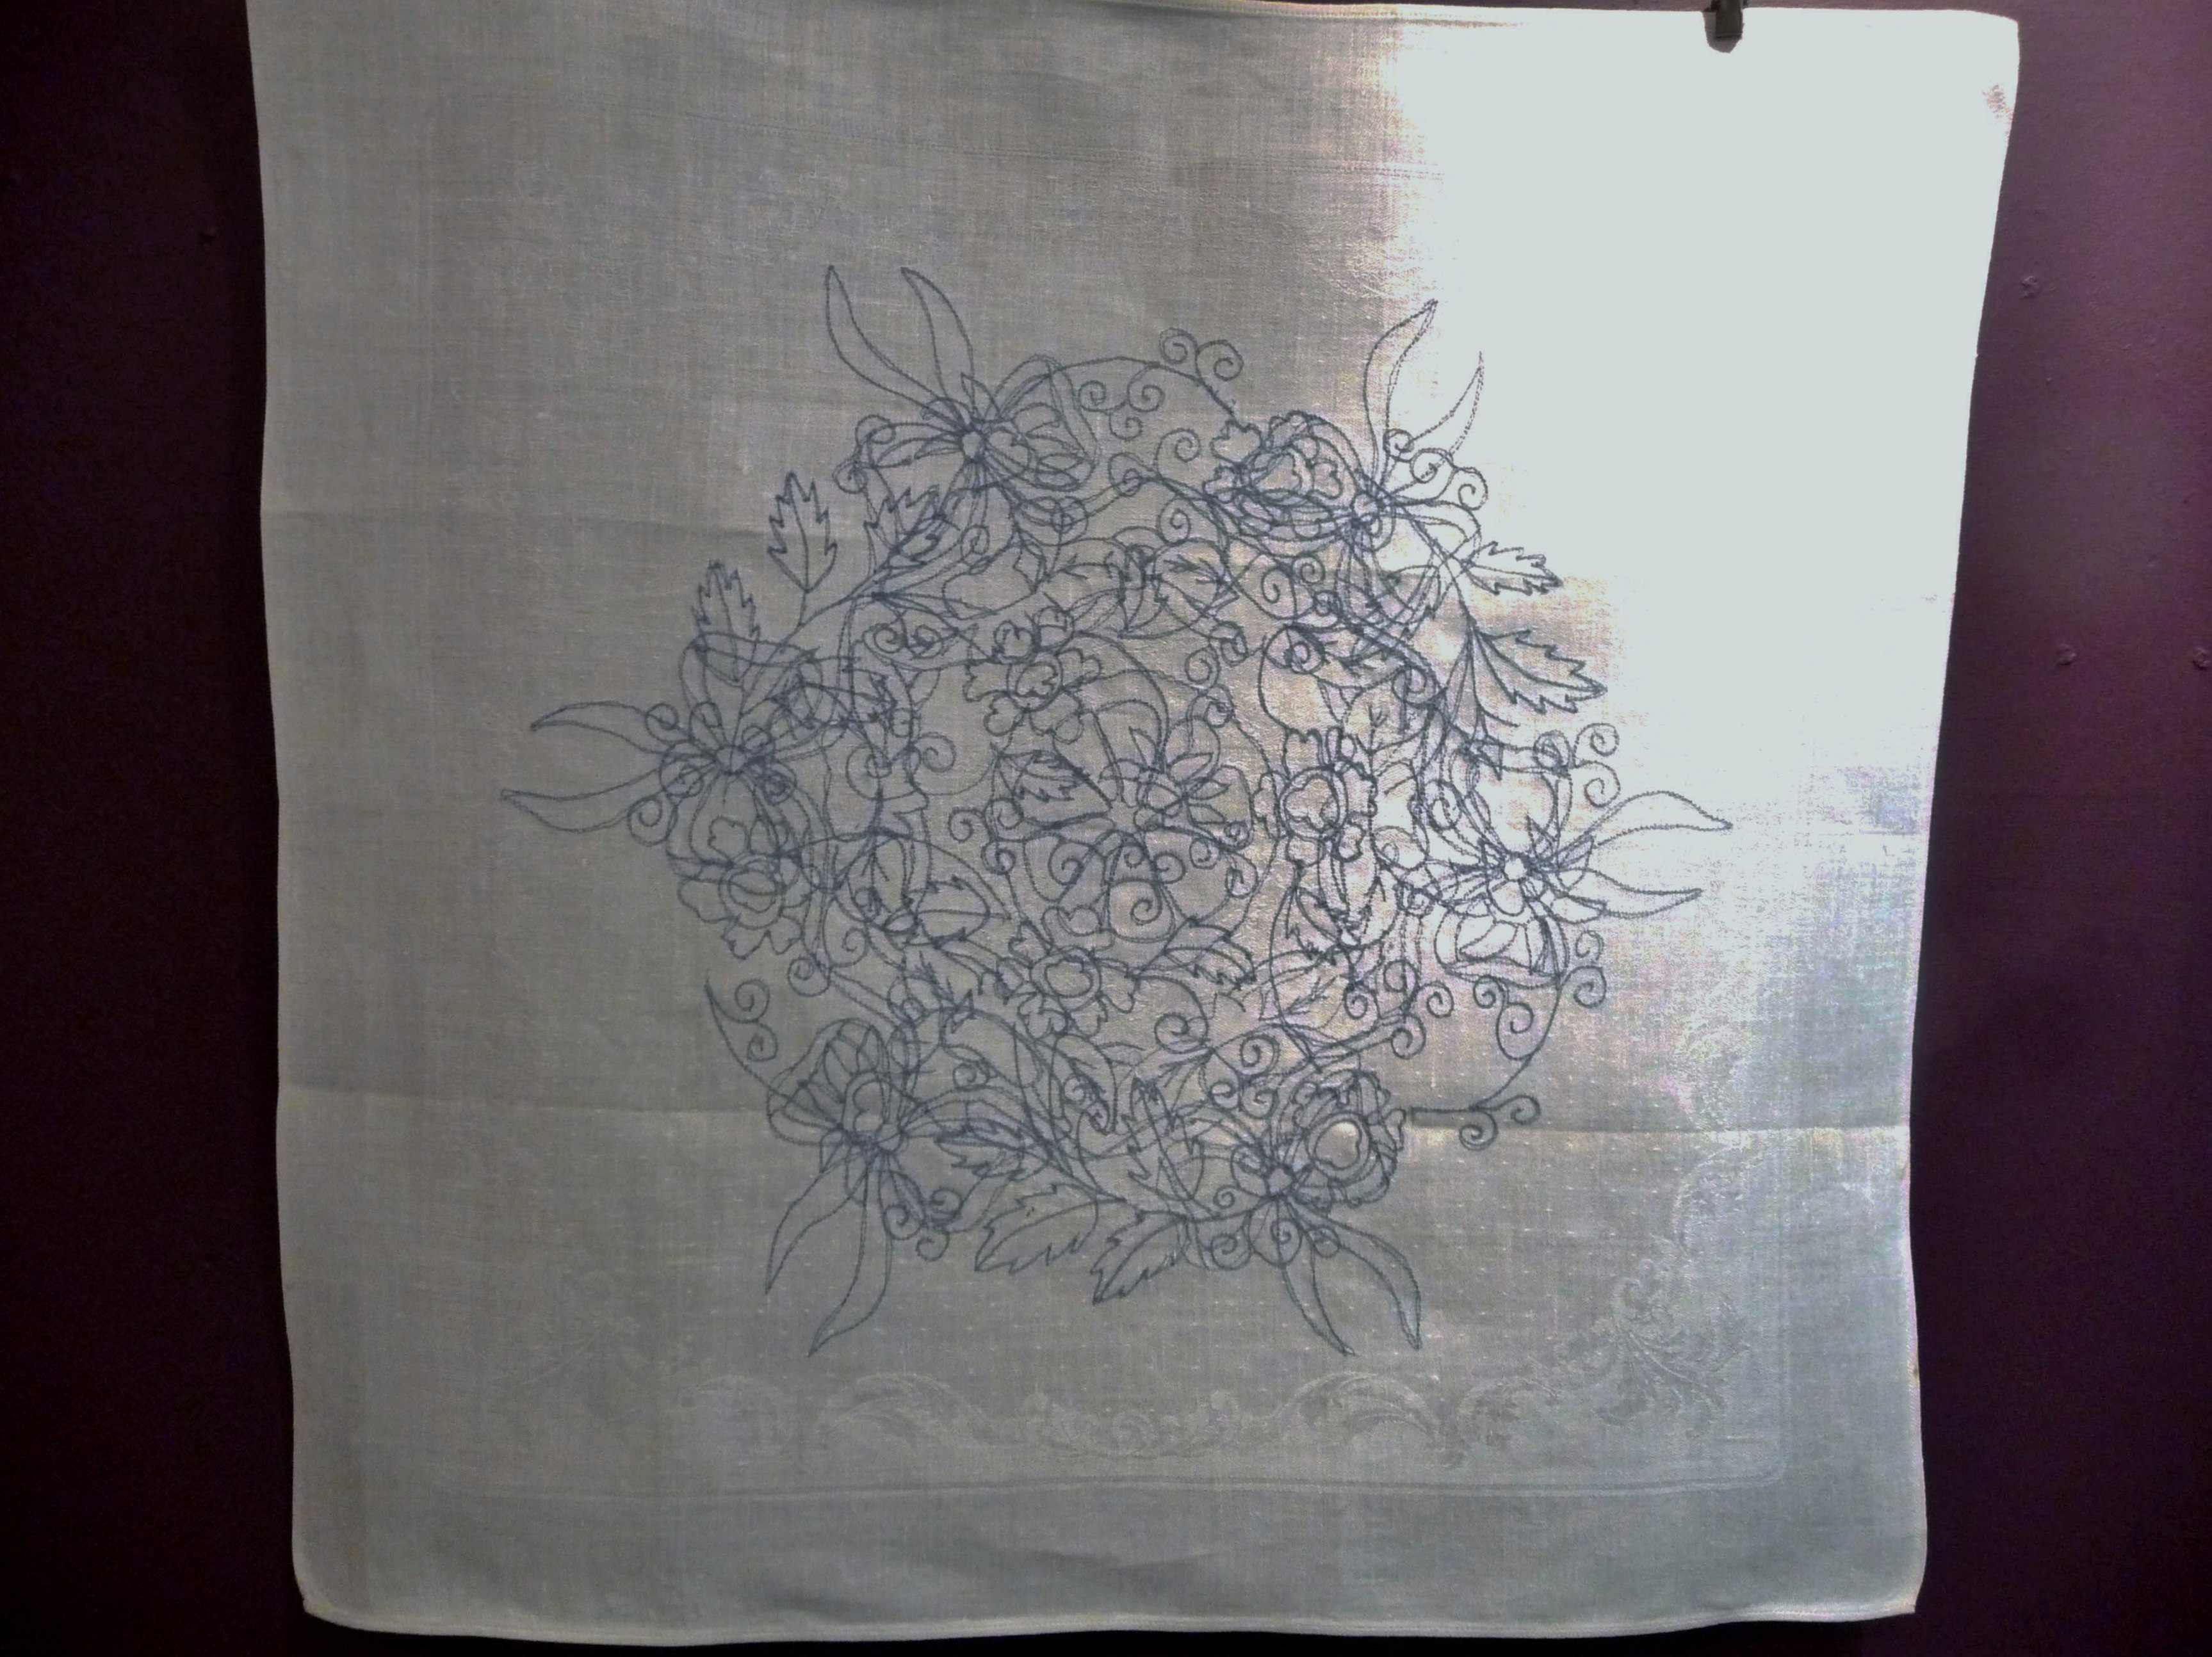 MANDALA FOR THE EARTH 1 by Janet Wilkinson, machine stitch on damask napkin